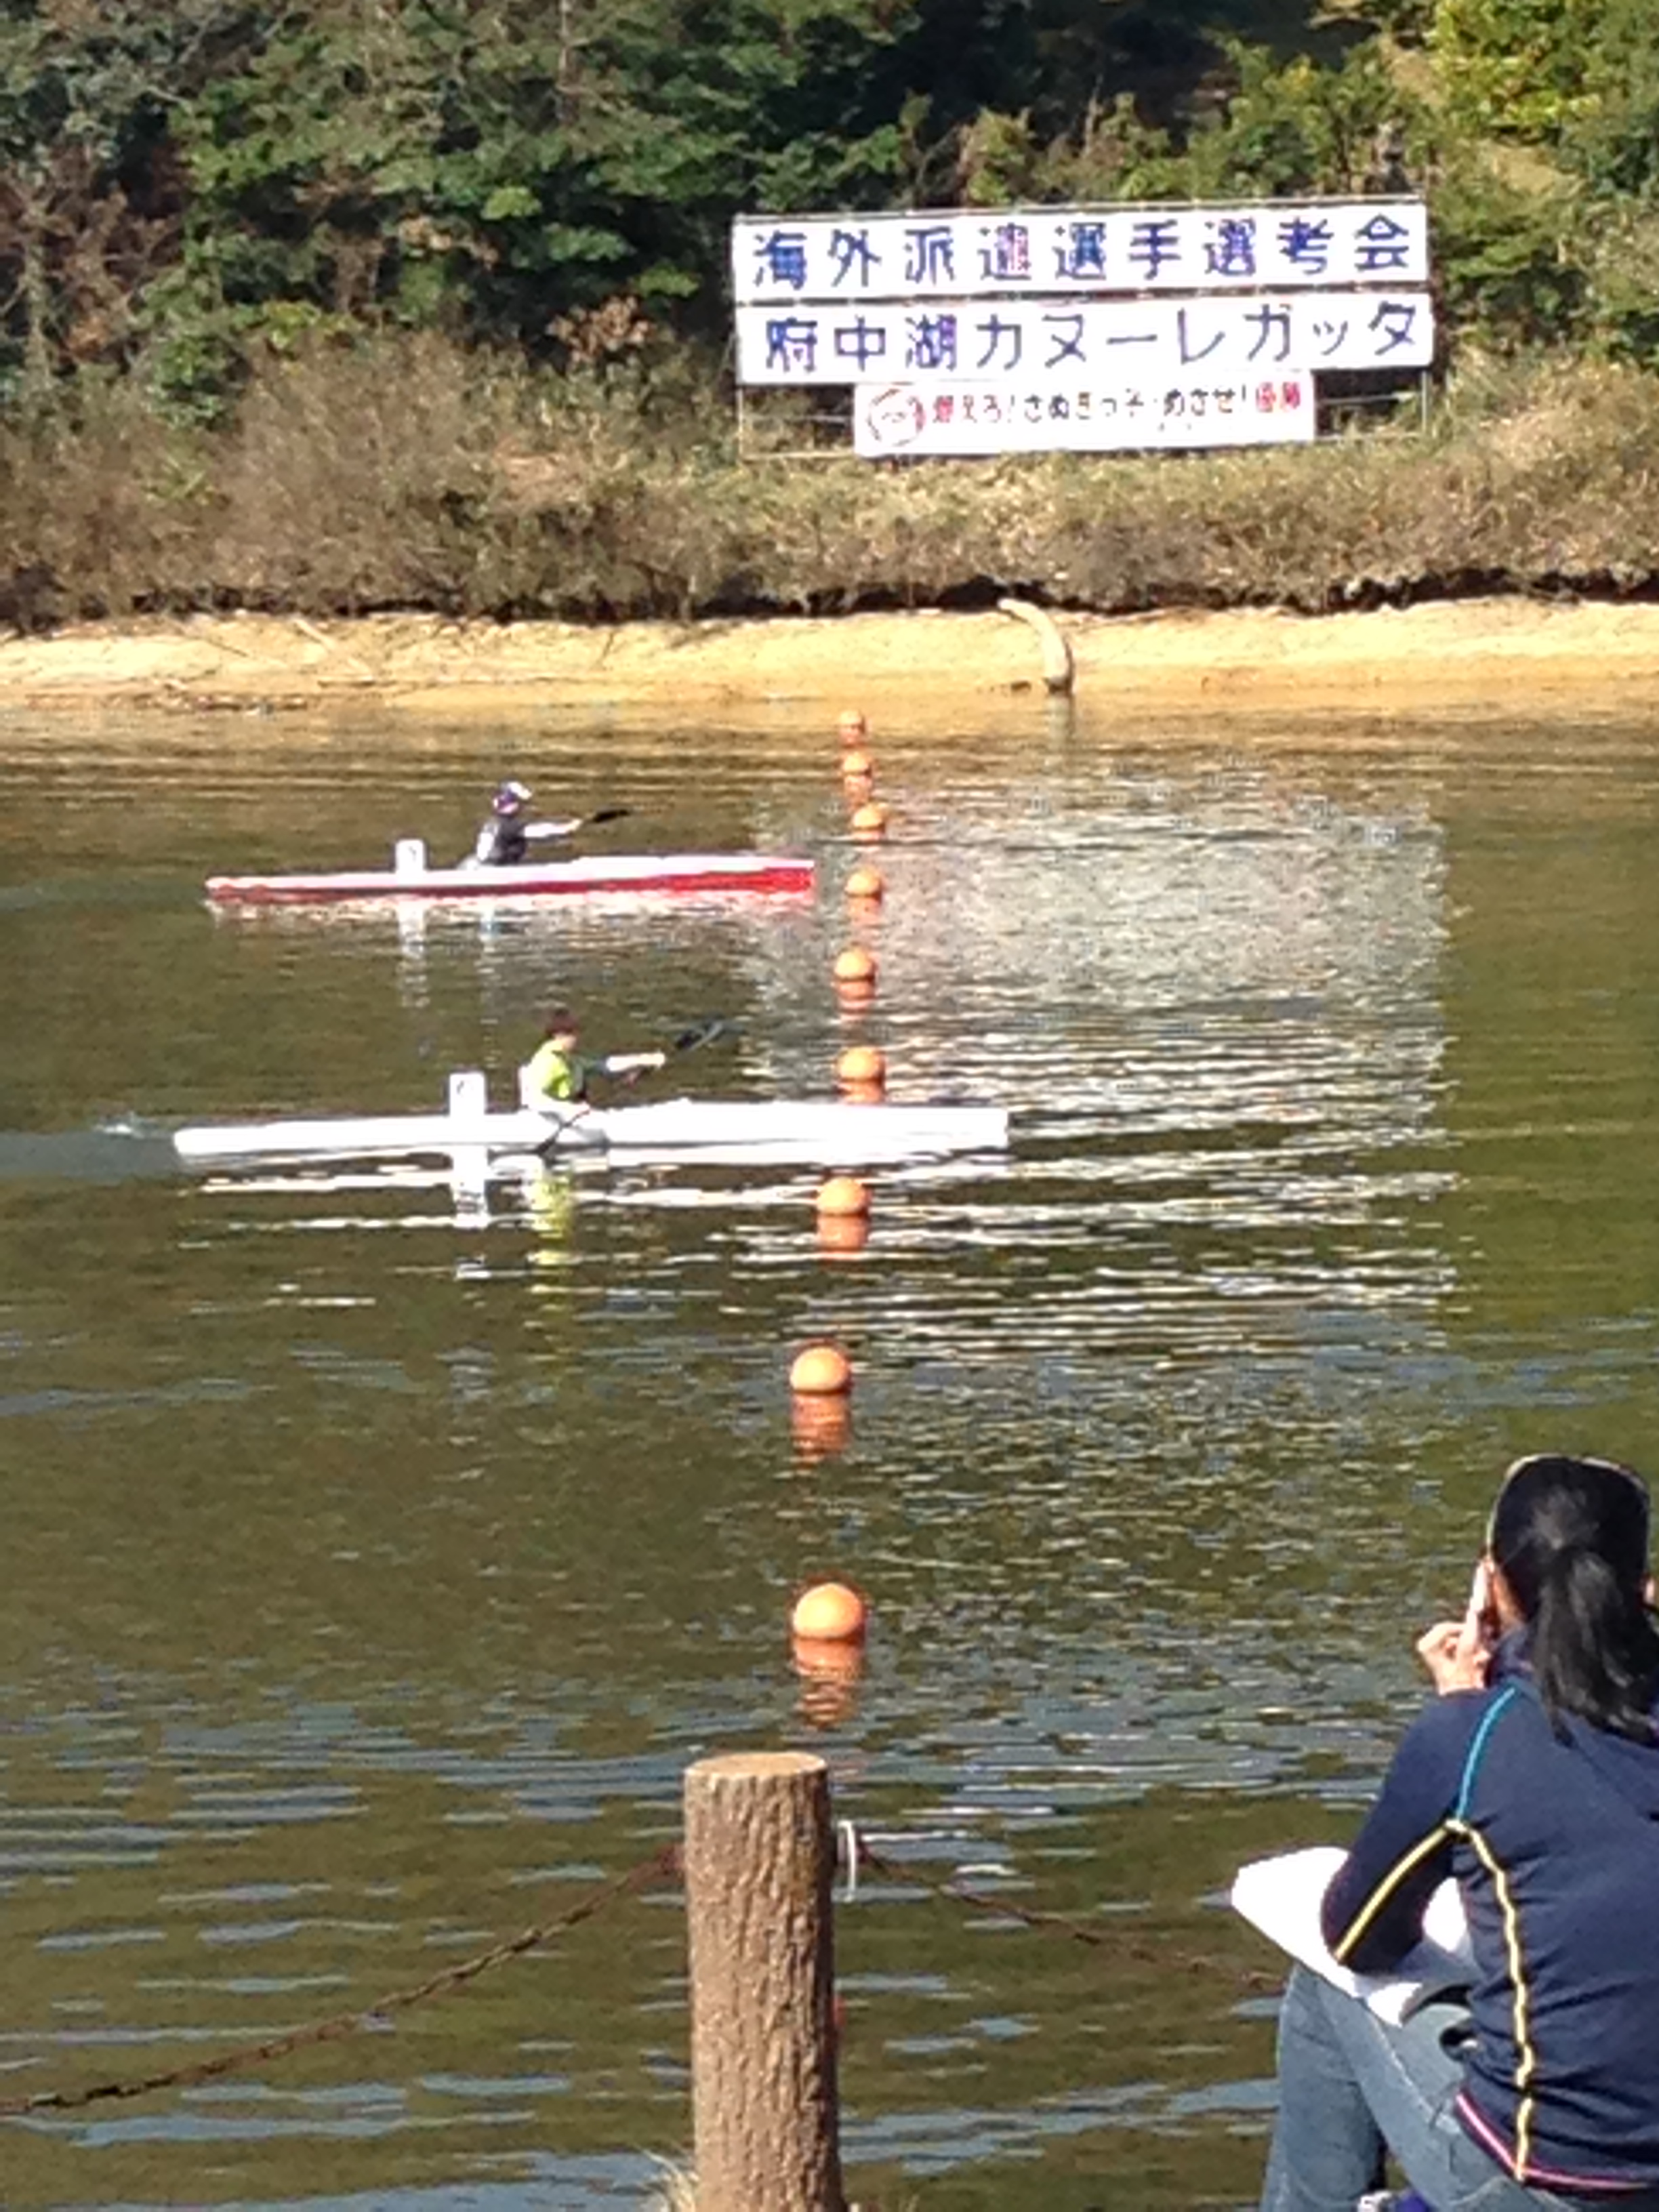 paralympic canoe(Canoe-Regatta overseas delegation trial at Lake Fuchu (2015))